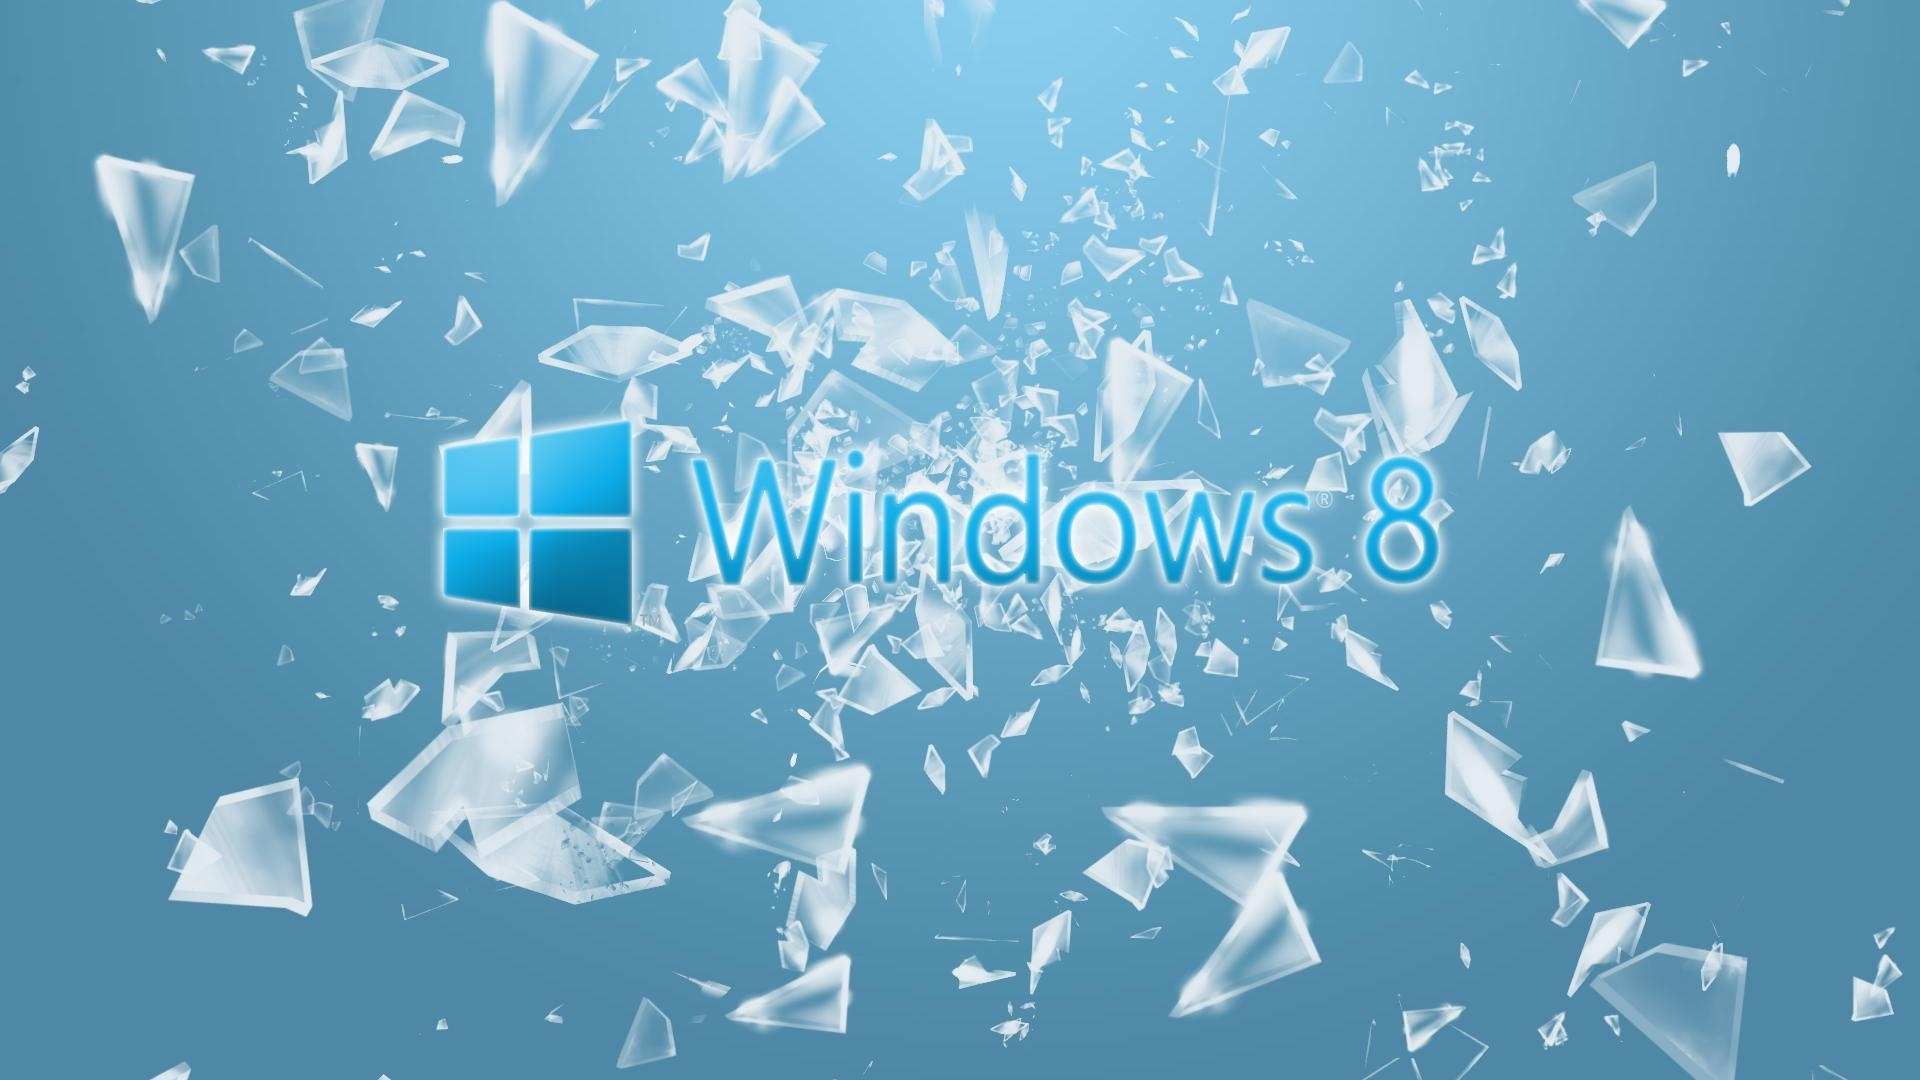 10 most popular windows 8 wallpaper hd 3d for desktop full hd 1920